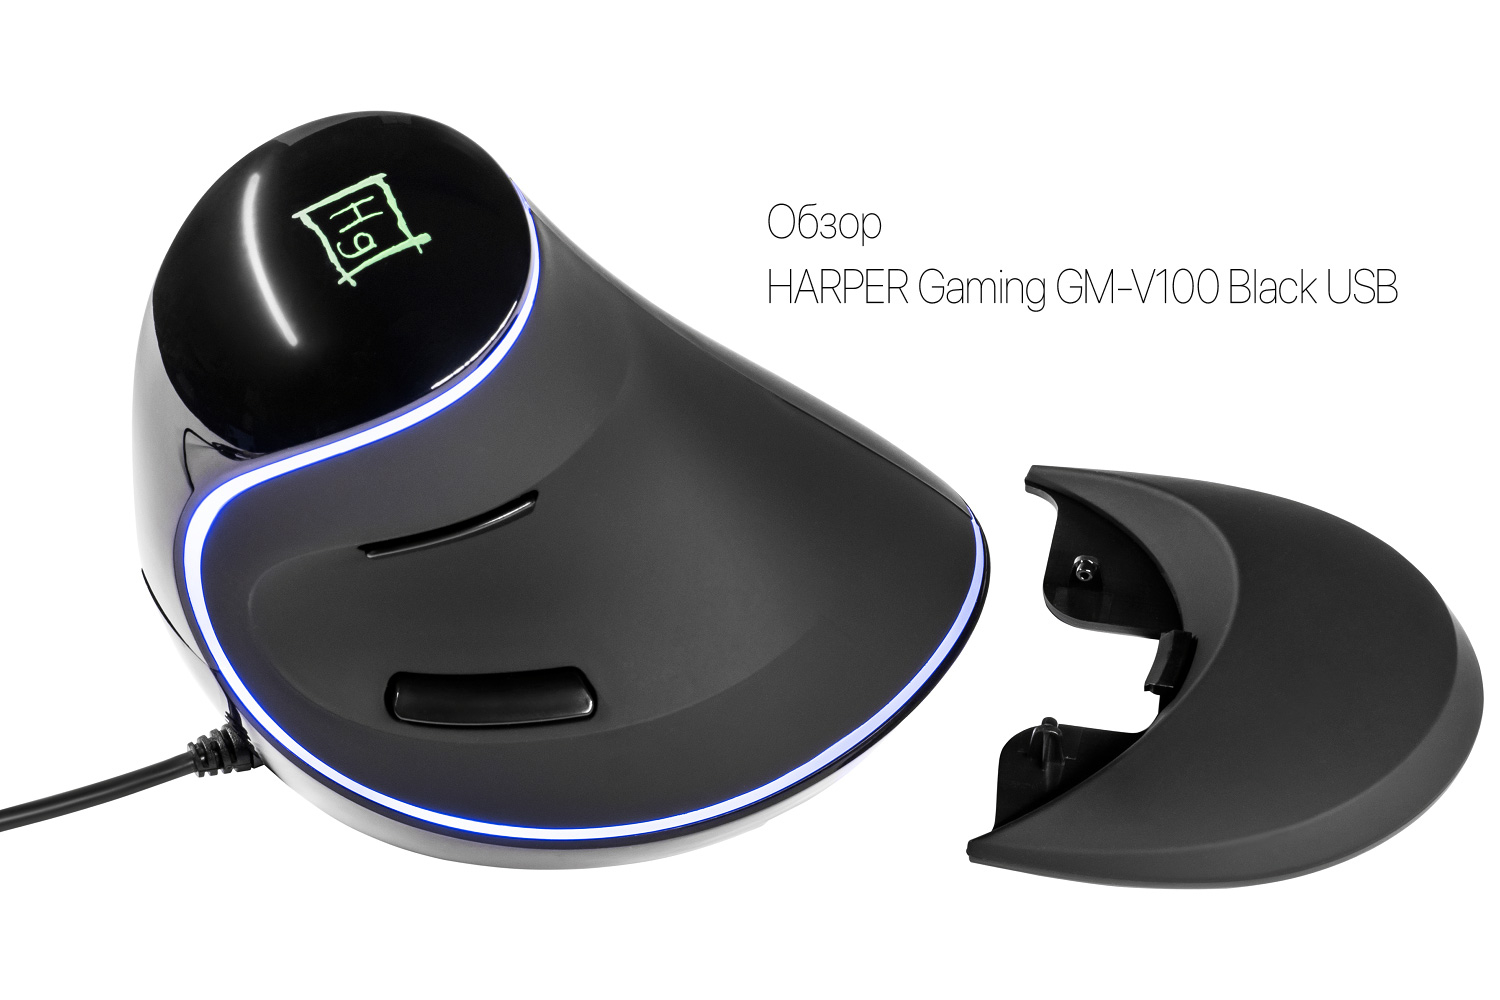 HARPER Gaming GM-V100 Black USB